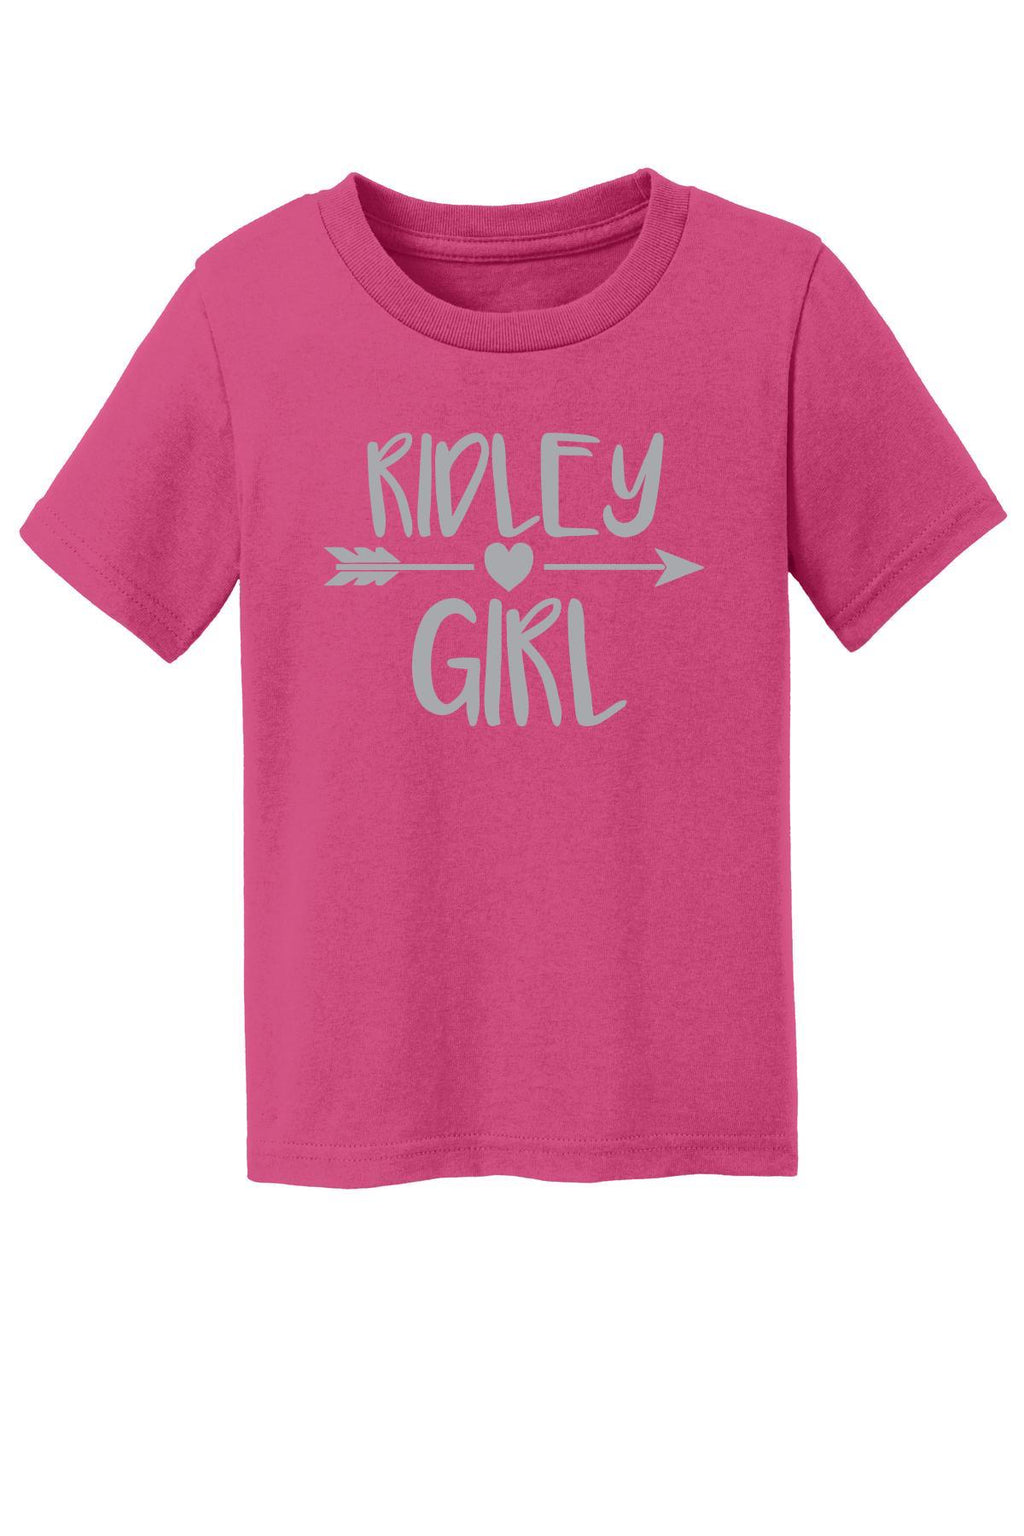 Toddler Pink Ridley Girl T-Shirt